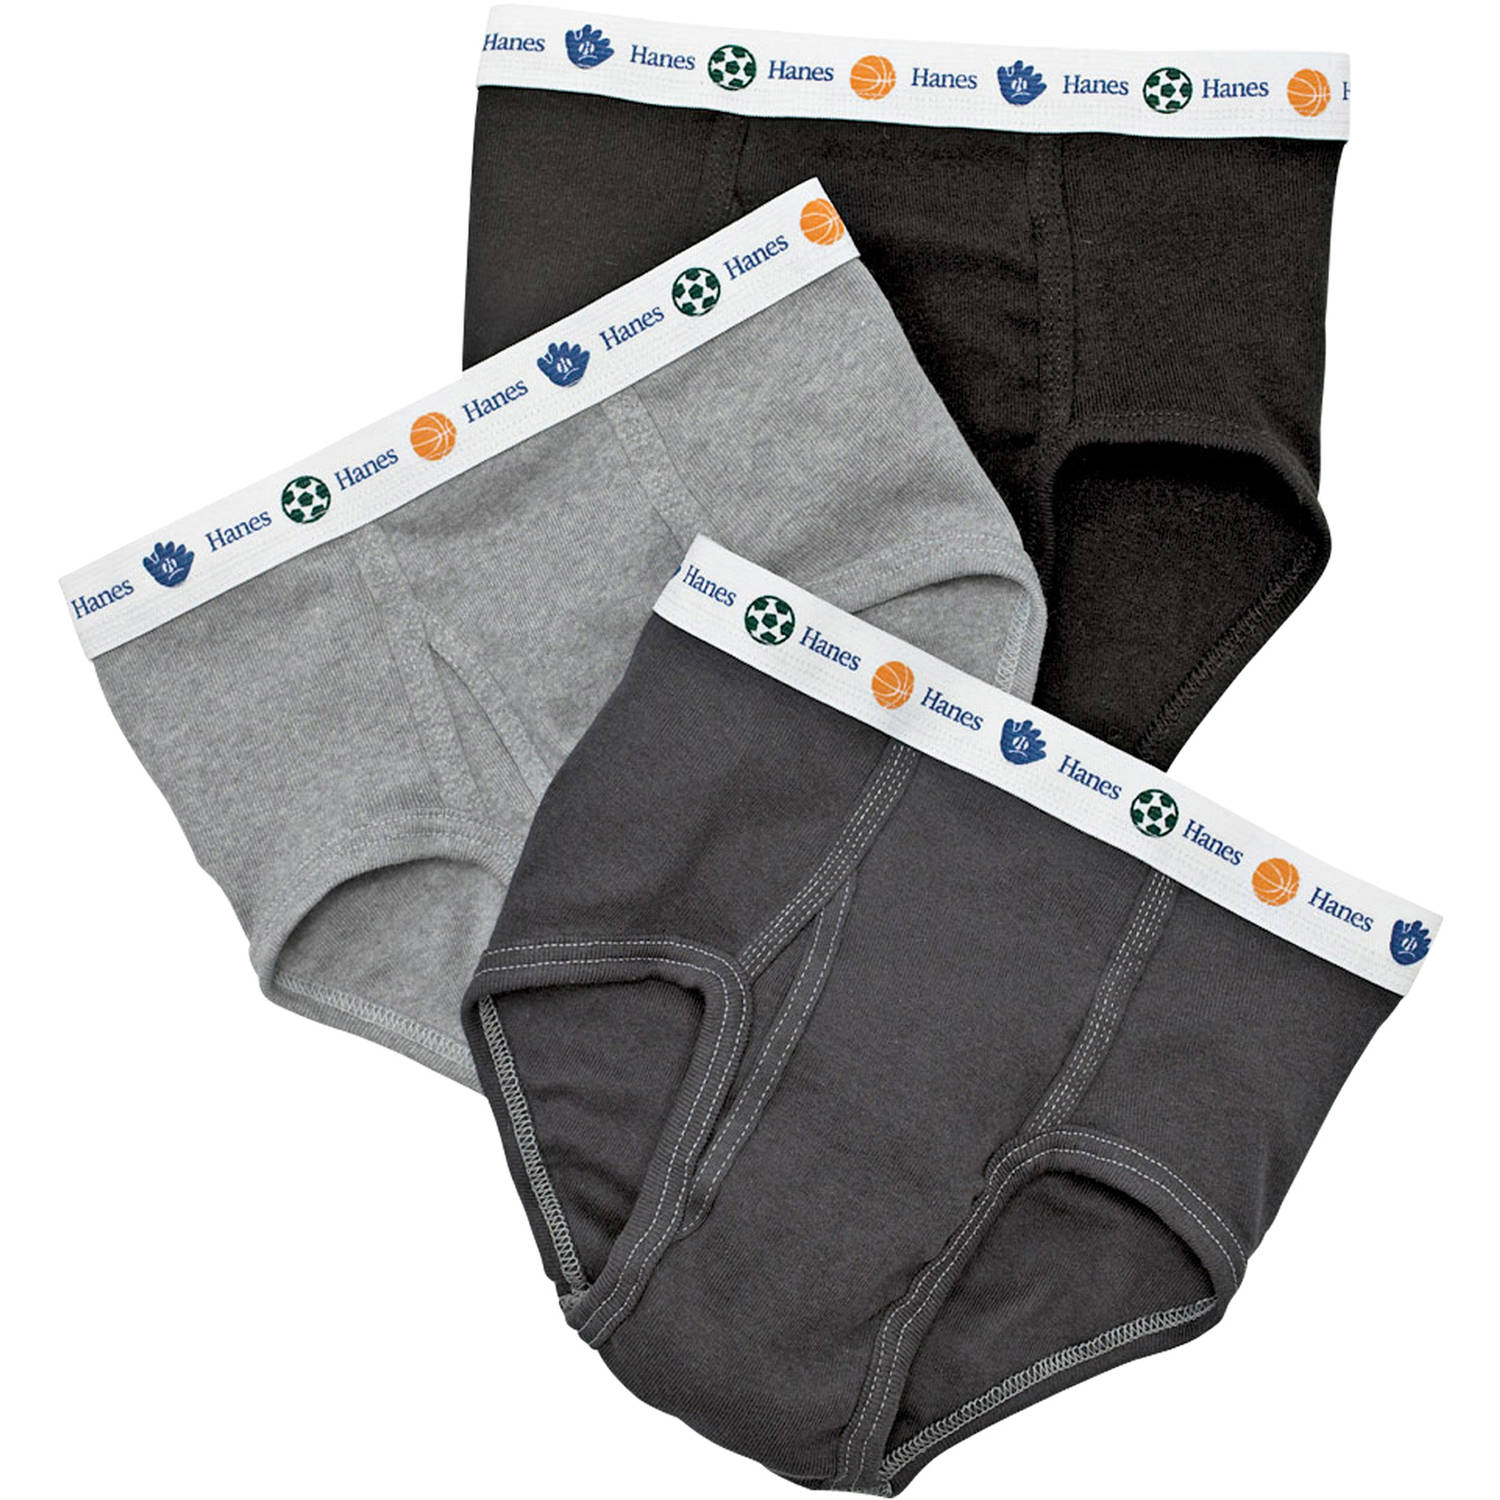 Hanes Toddler Boys' Briefs, 5-Pack